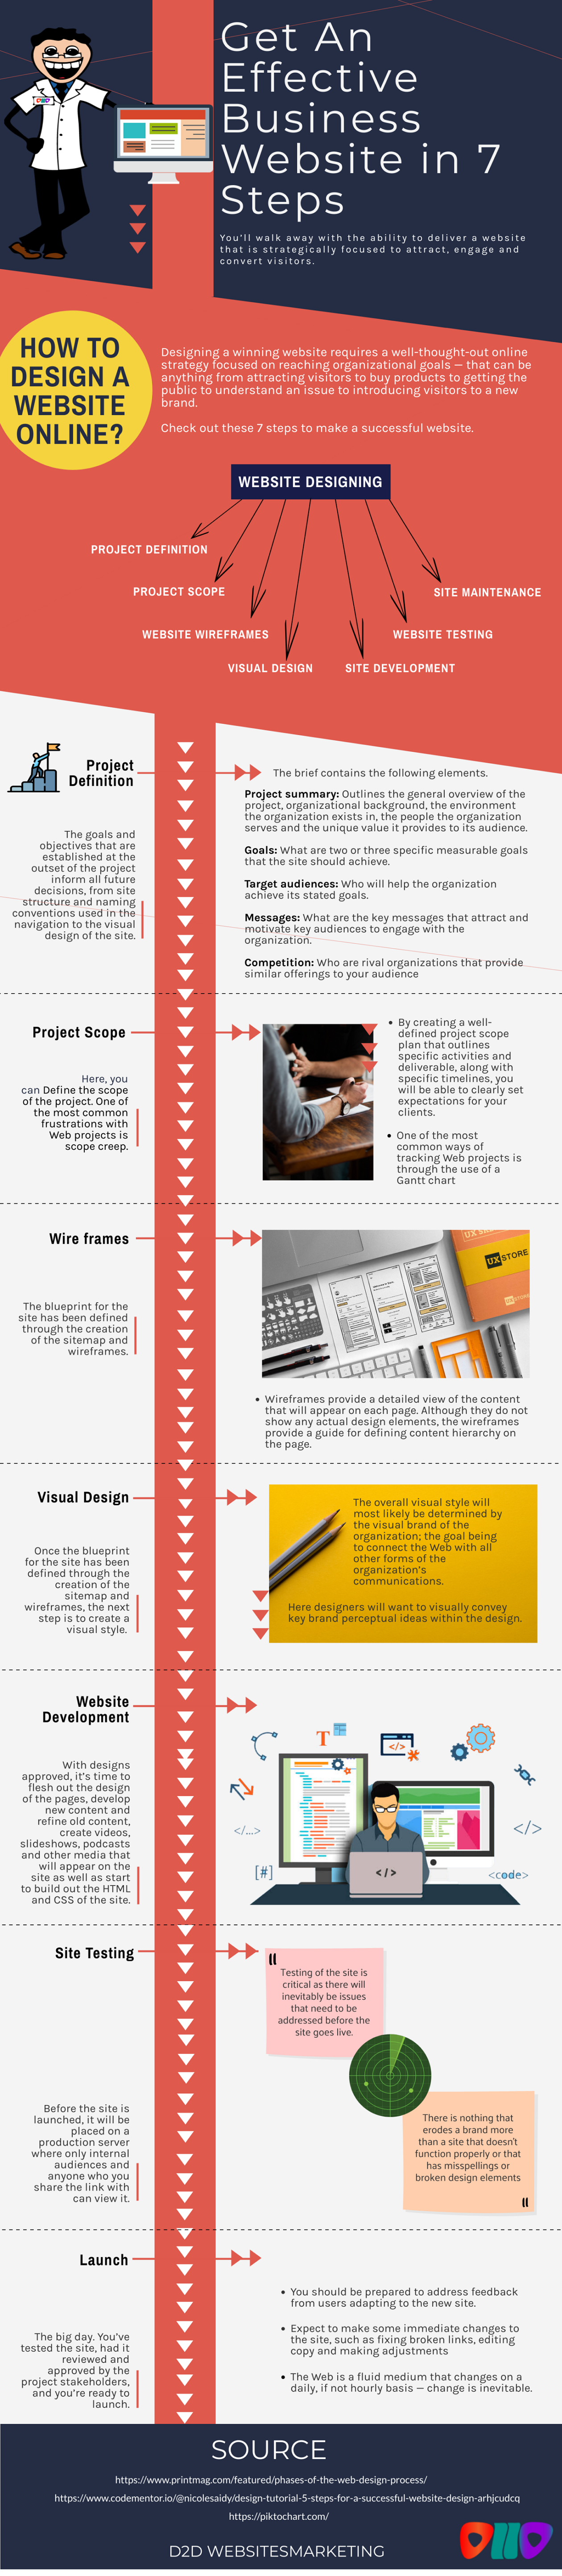 Get an Effective Business Website in 7 Steps #infographic